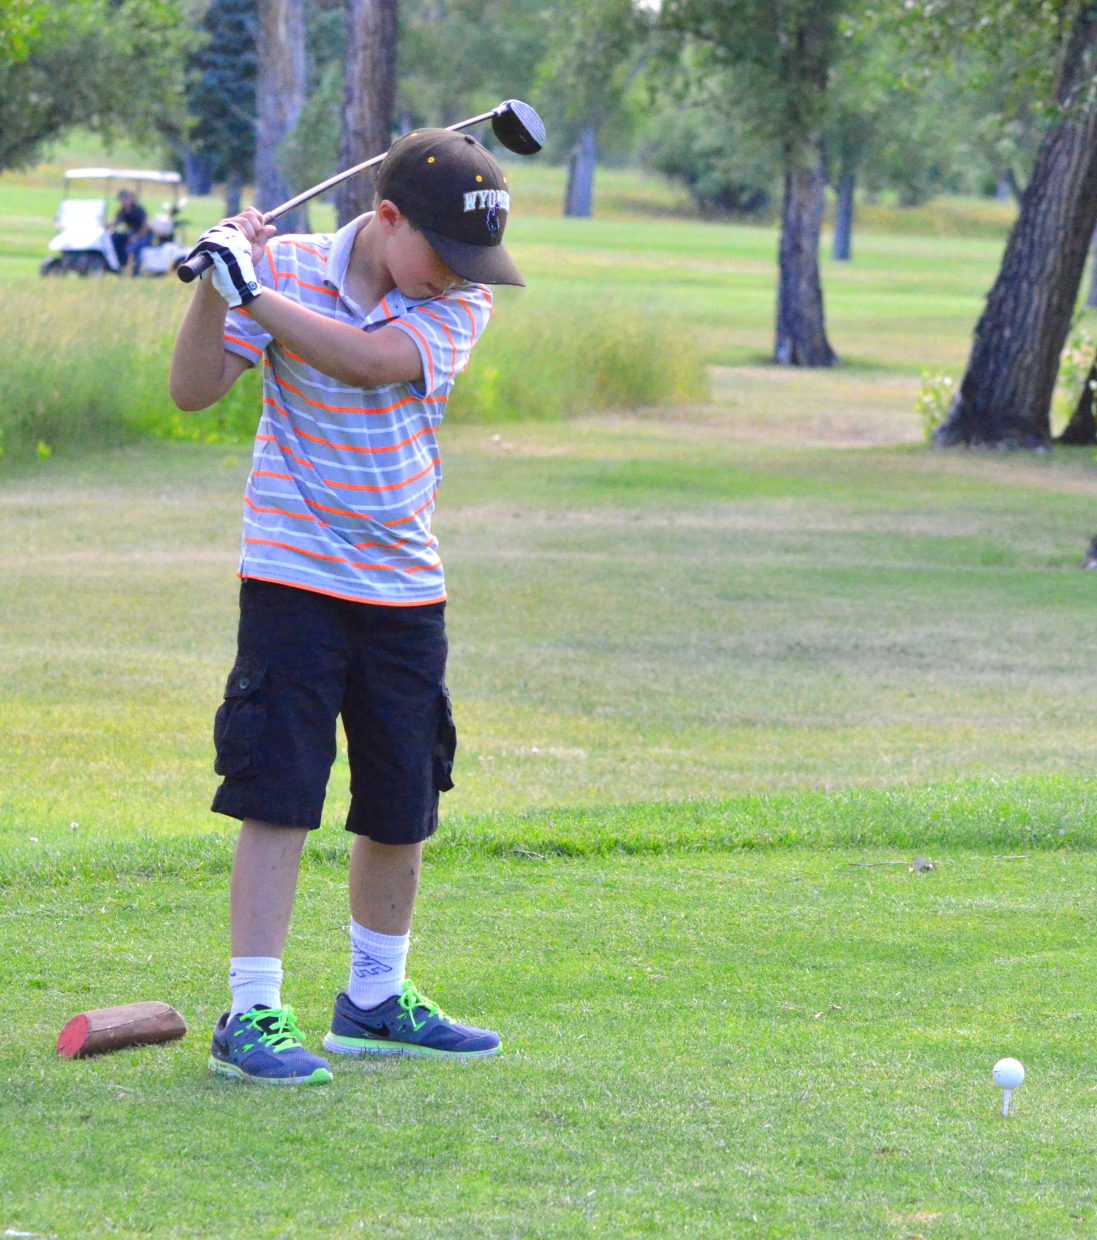 William Geis, 9, goes into his backswing on the eighth tee box of Yampa Valley Golf Course.